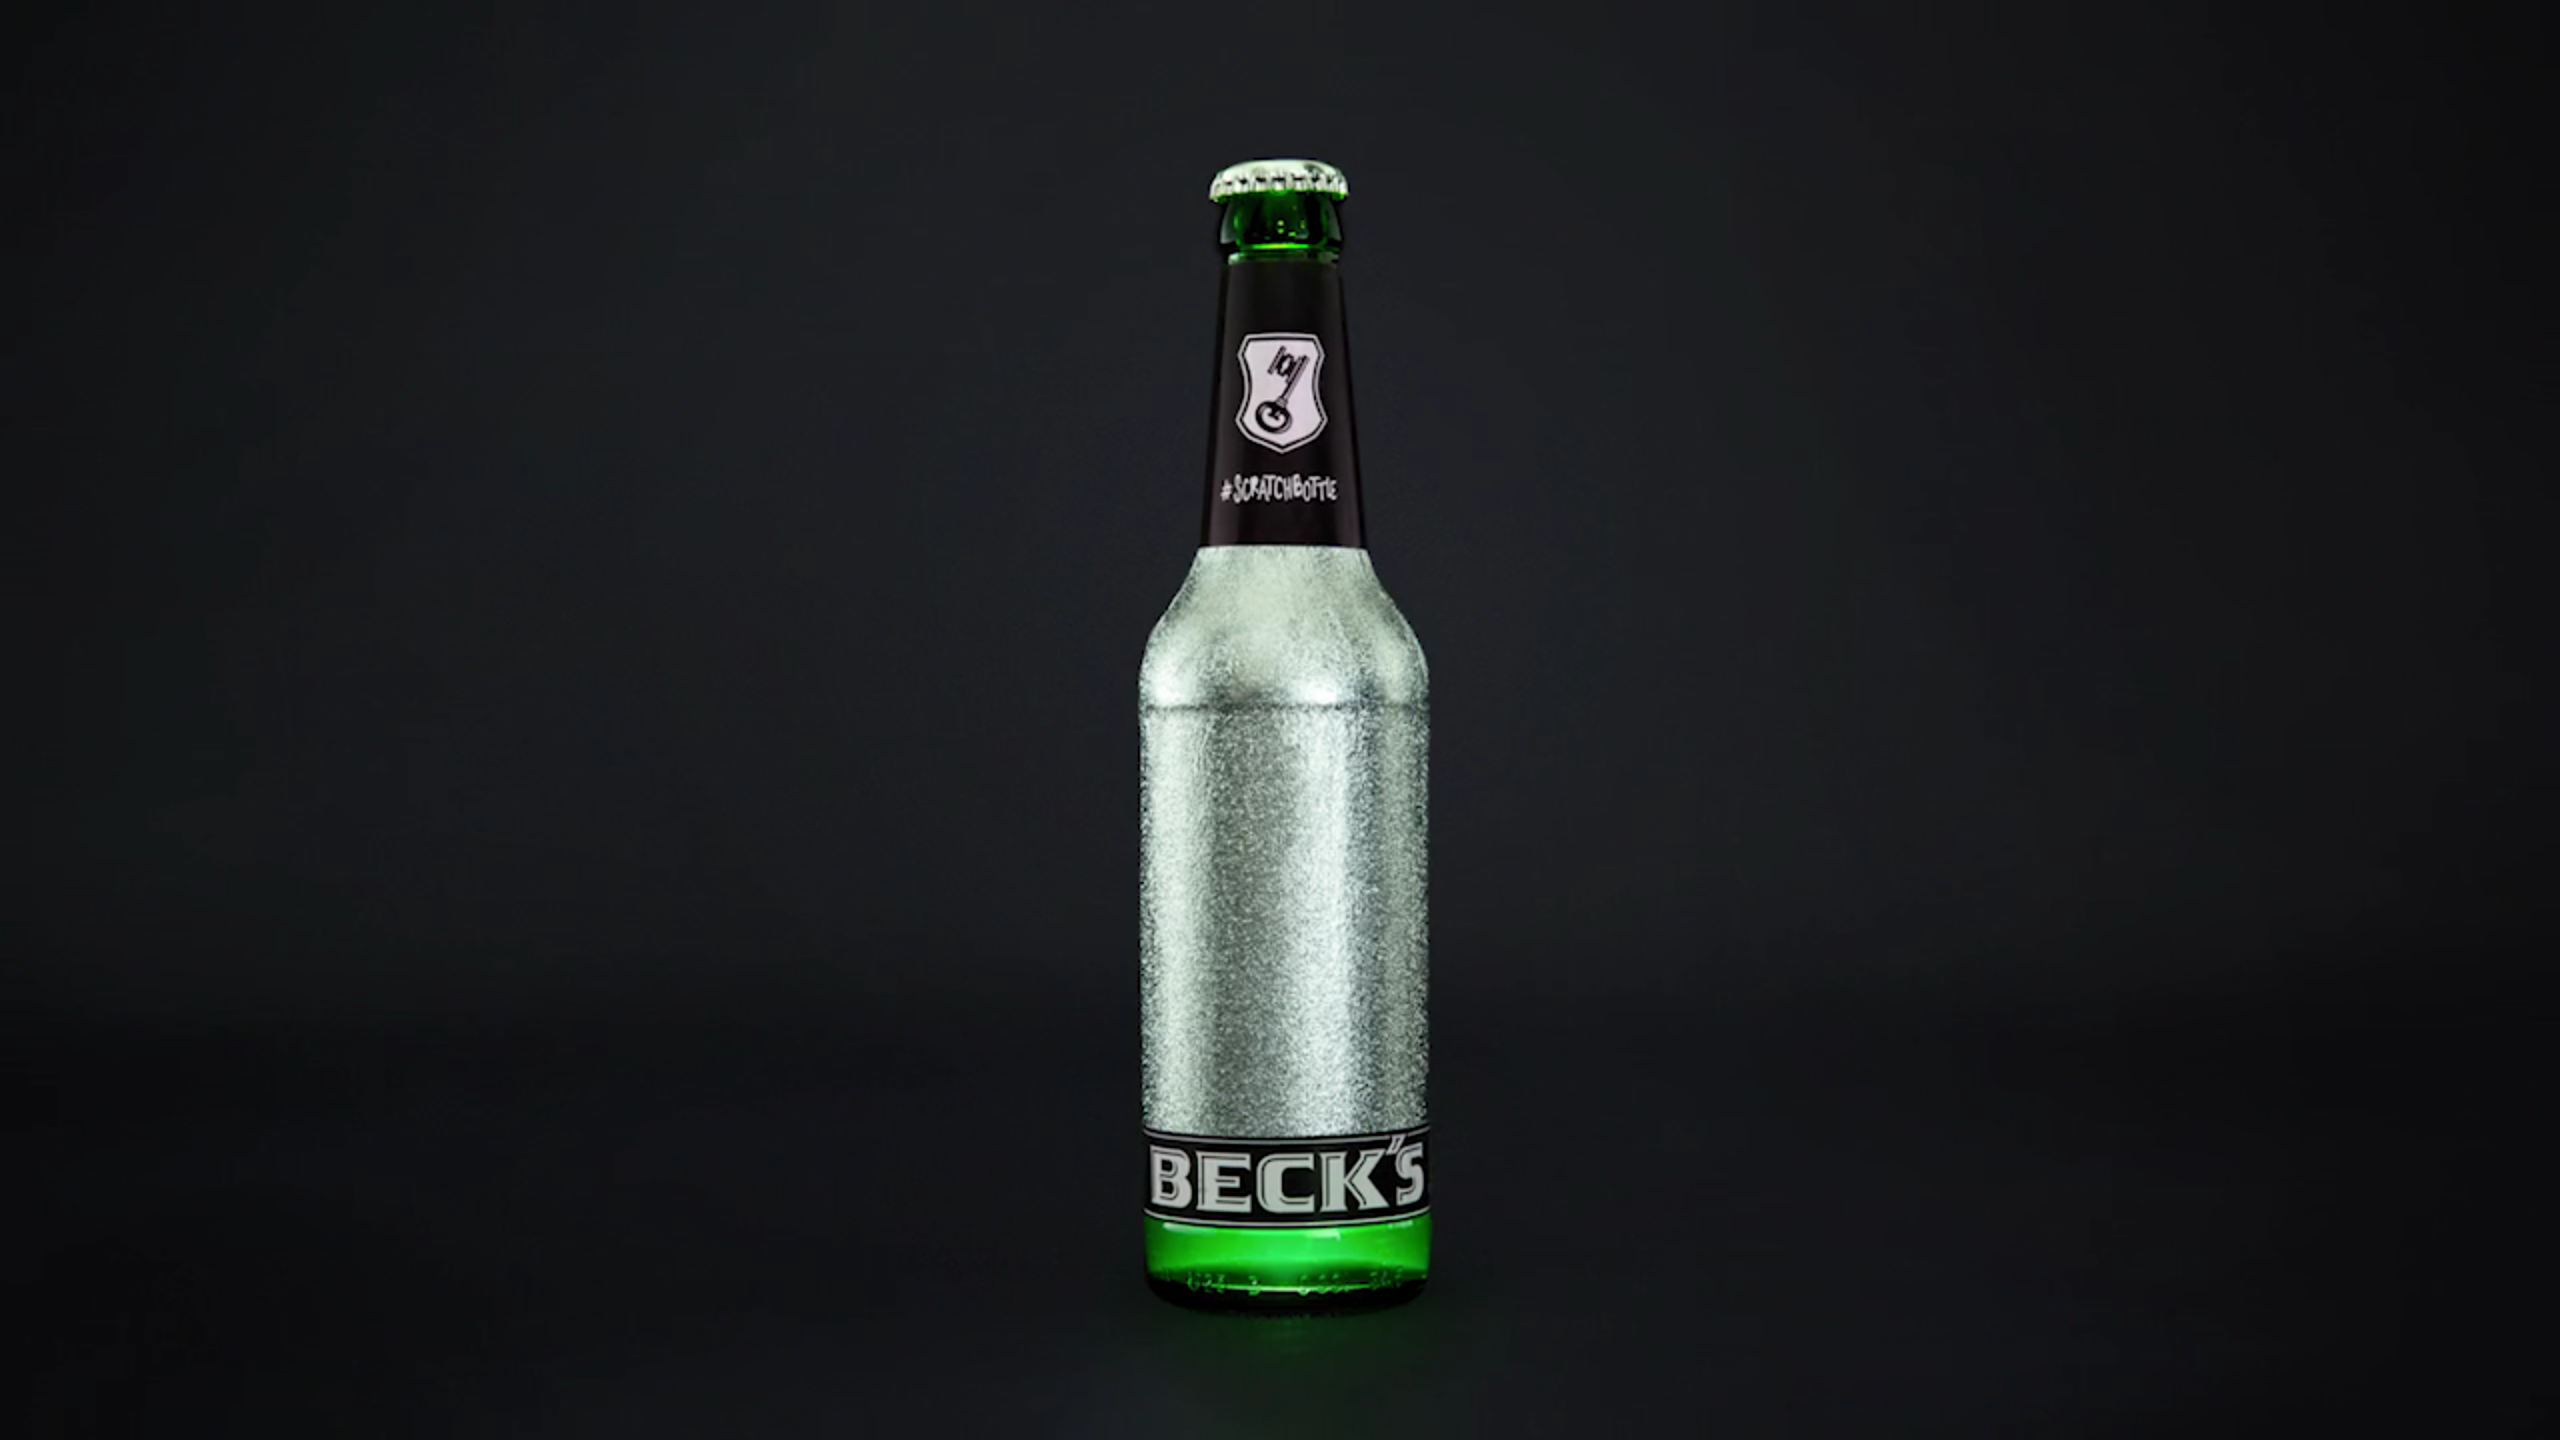 bottle-becks4